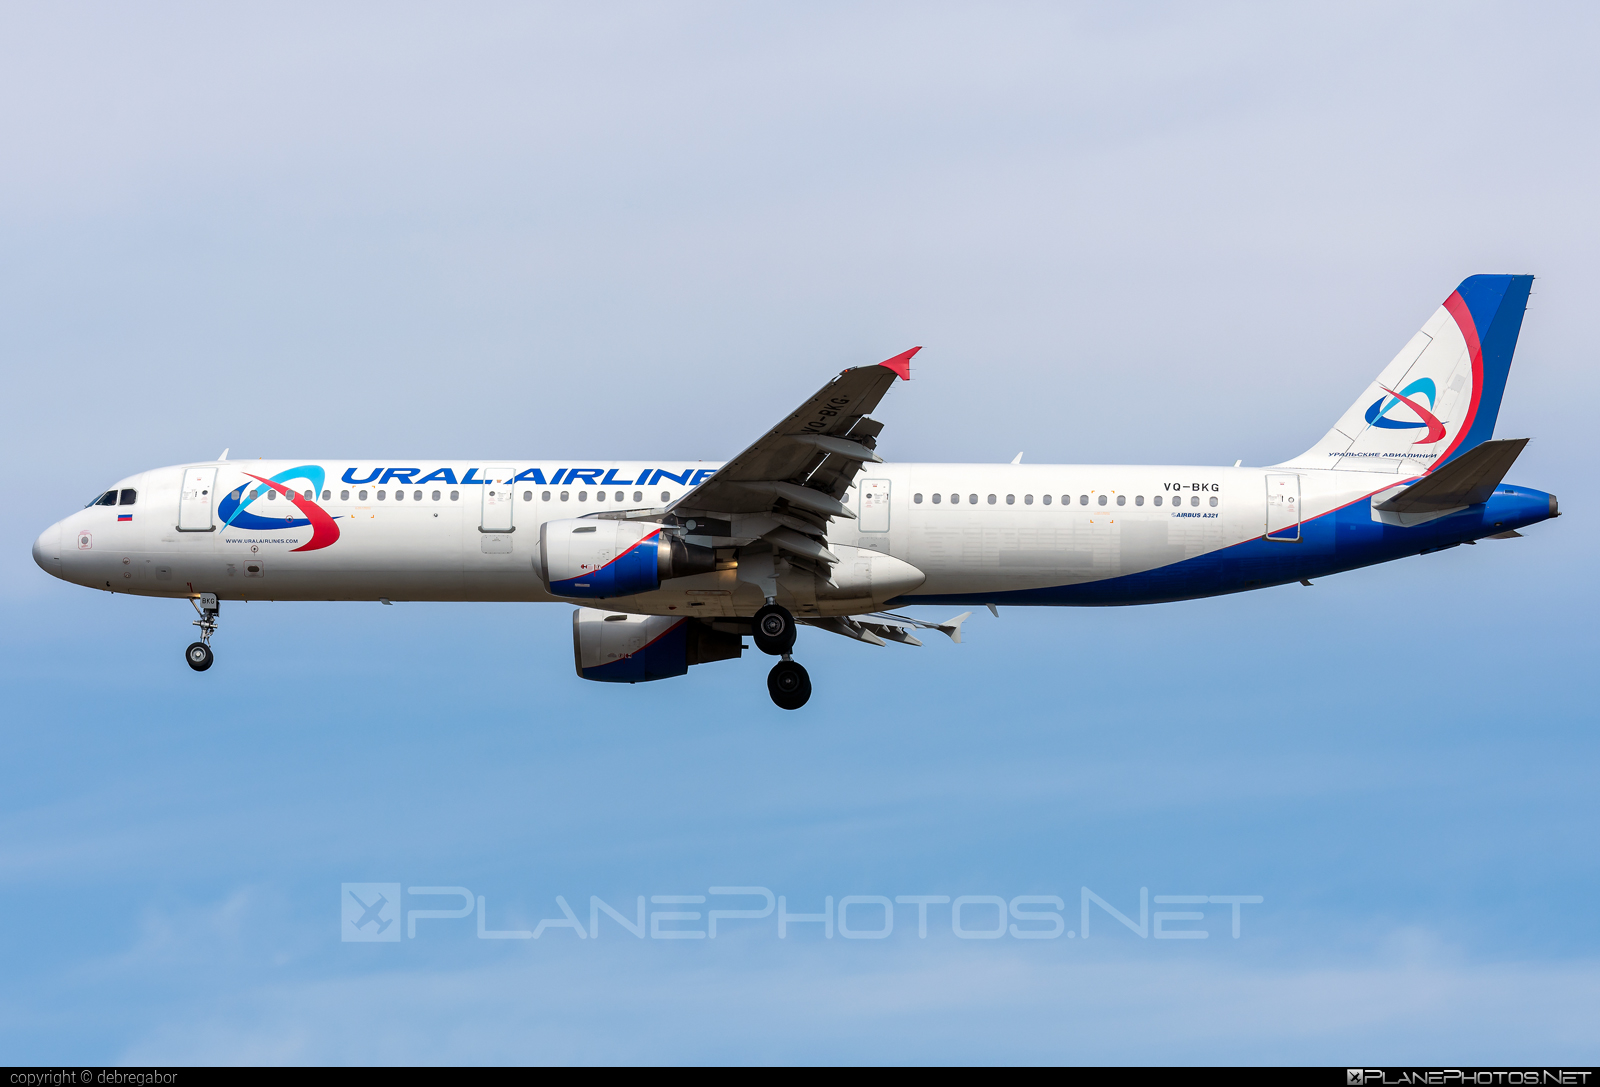 Airbus A321-211 - VQ-BKG operated by Ural Airlines #a320family #a321 #airbus #airbus321